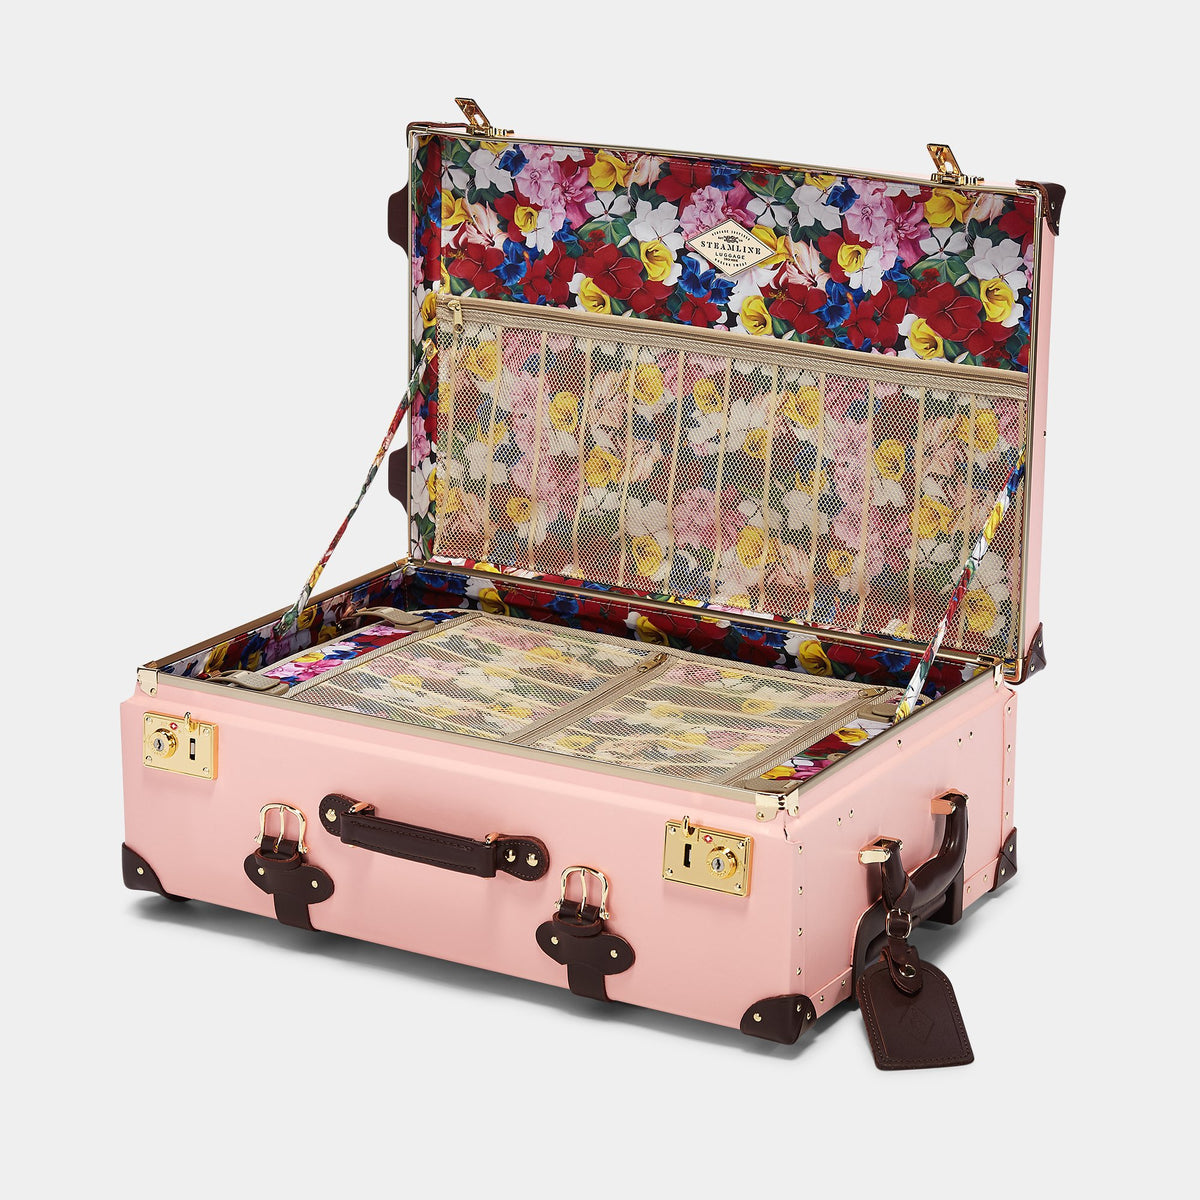 The Artiste Stowaway in Pink - Old Fashioned Suitcase - Interior Front